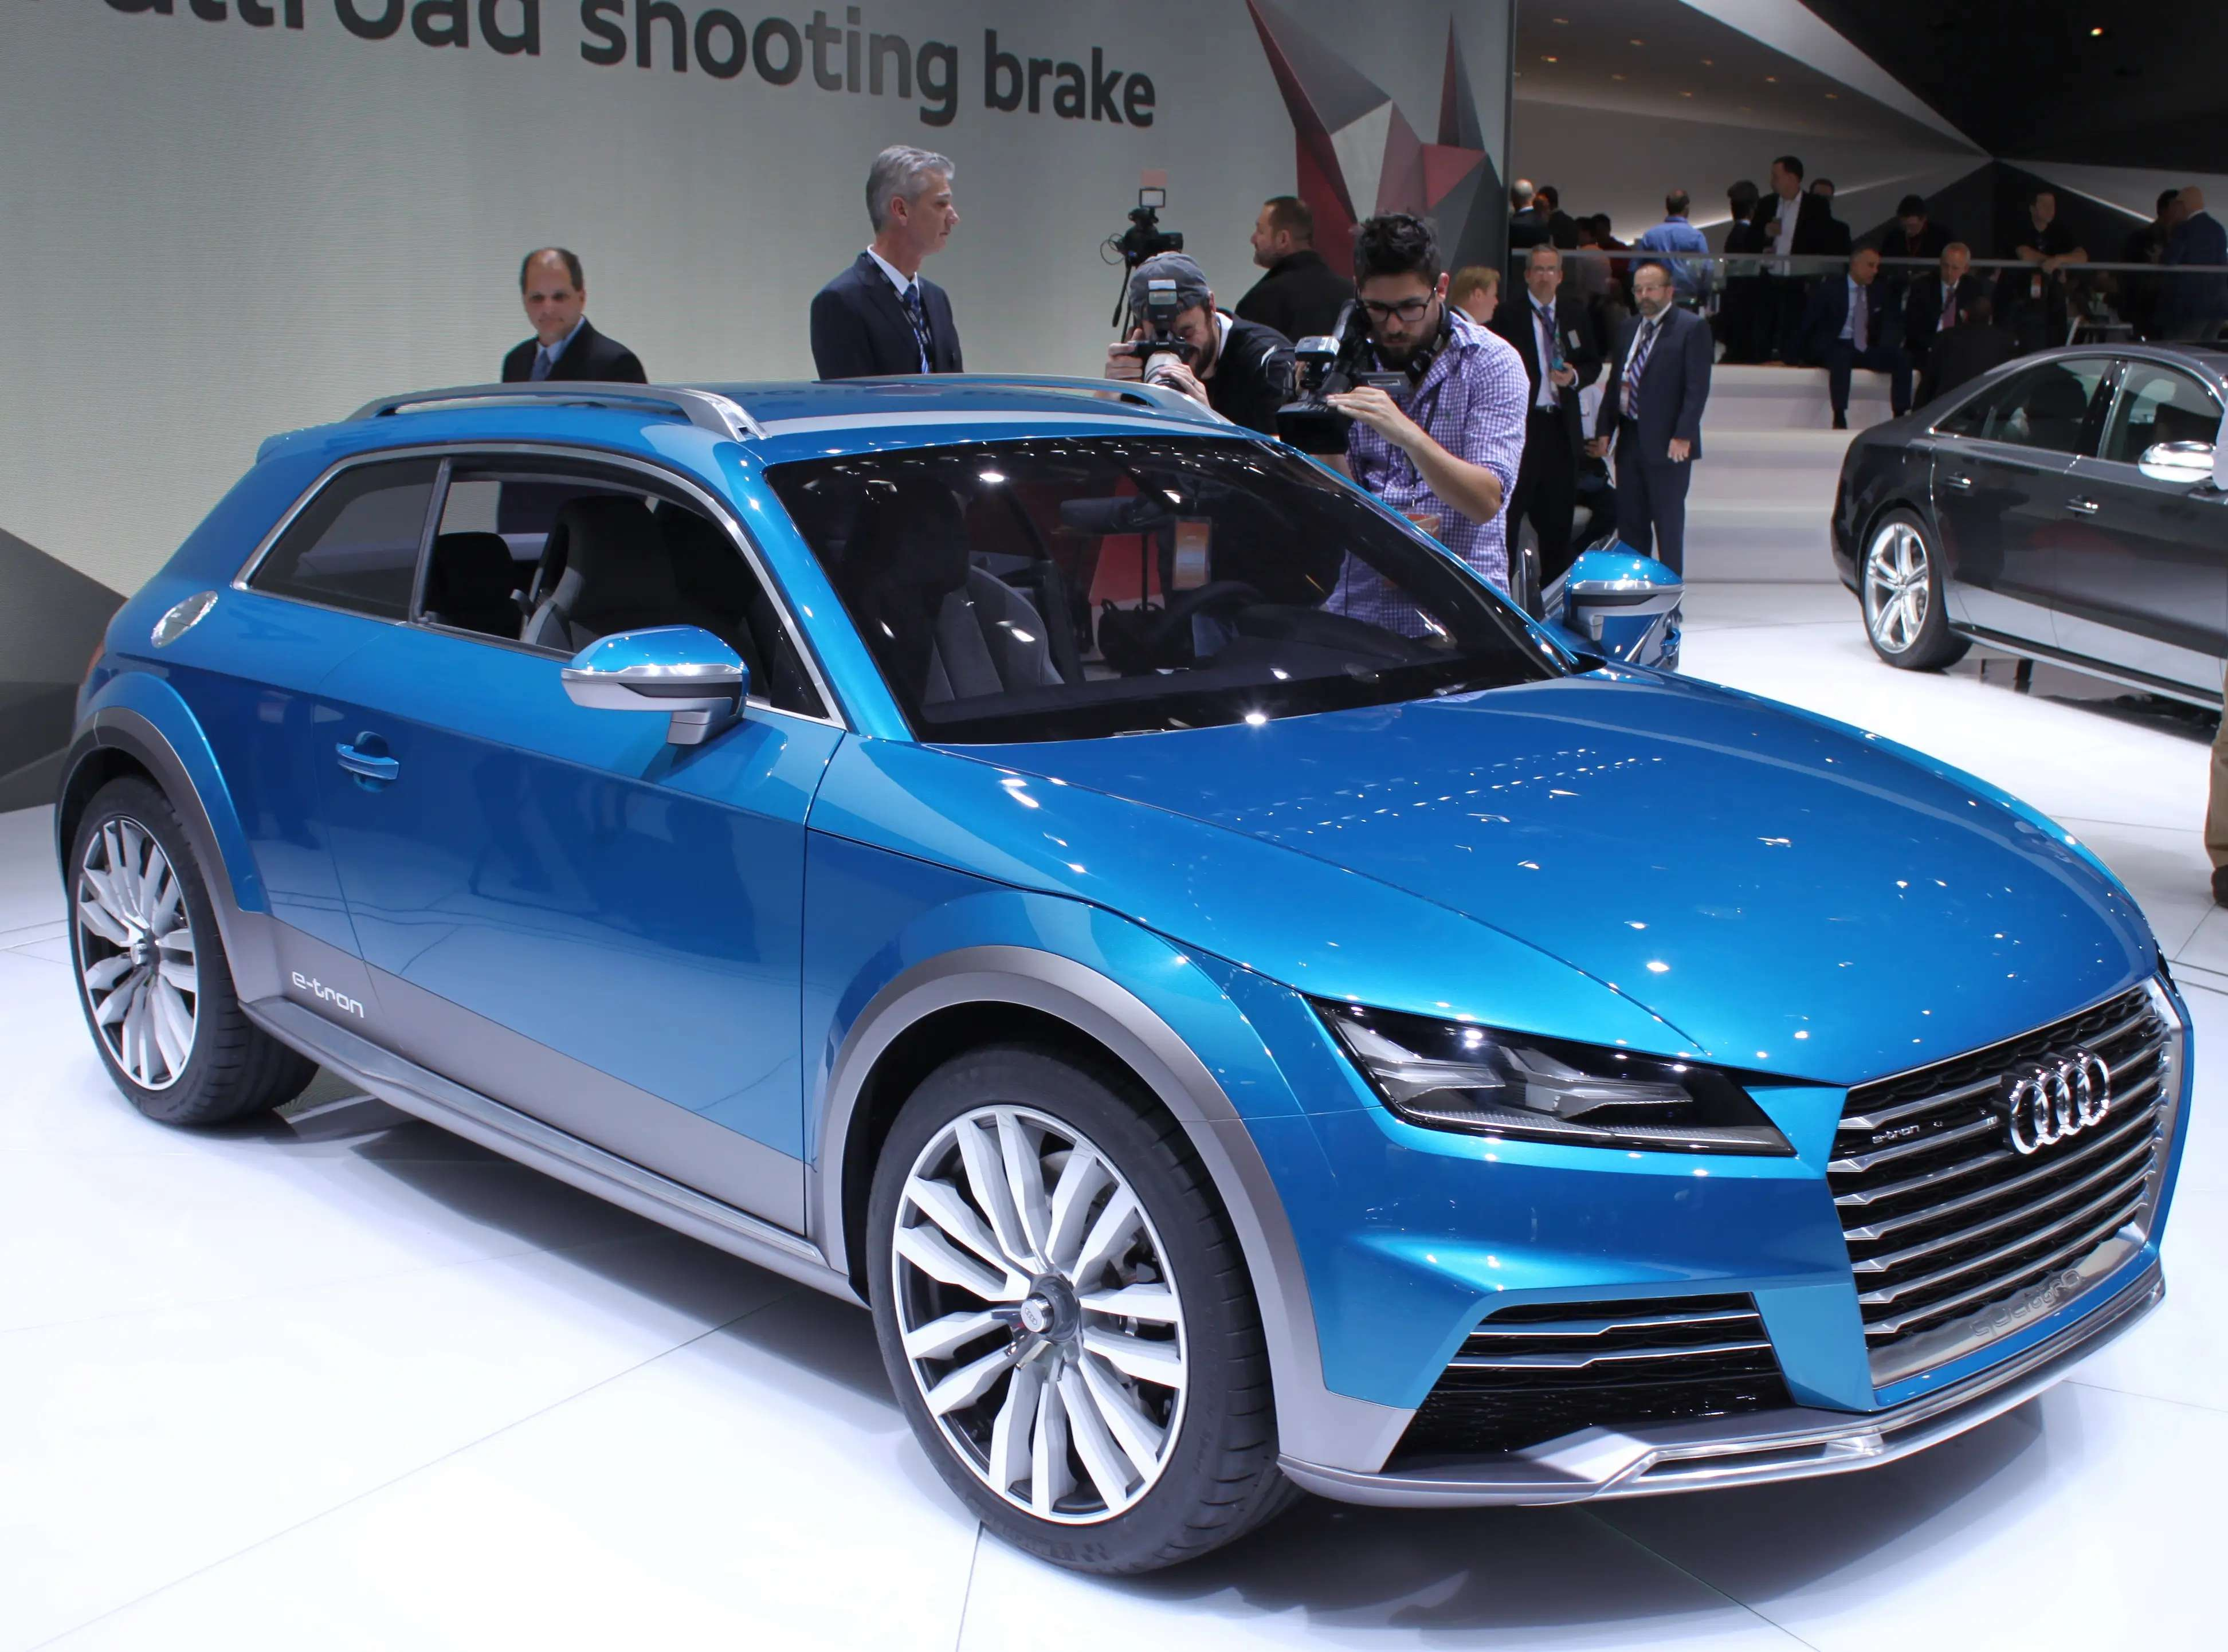 The electric Allroad Shooting Brake concept got Audi fans riled up when execs said it hints at the next-generation TT sports car.